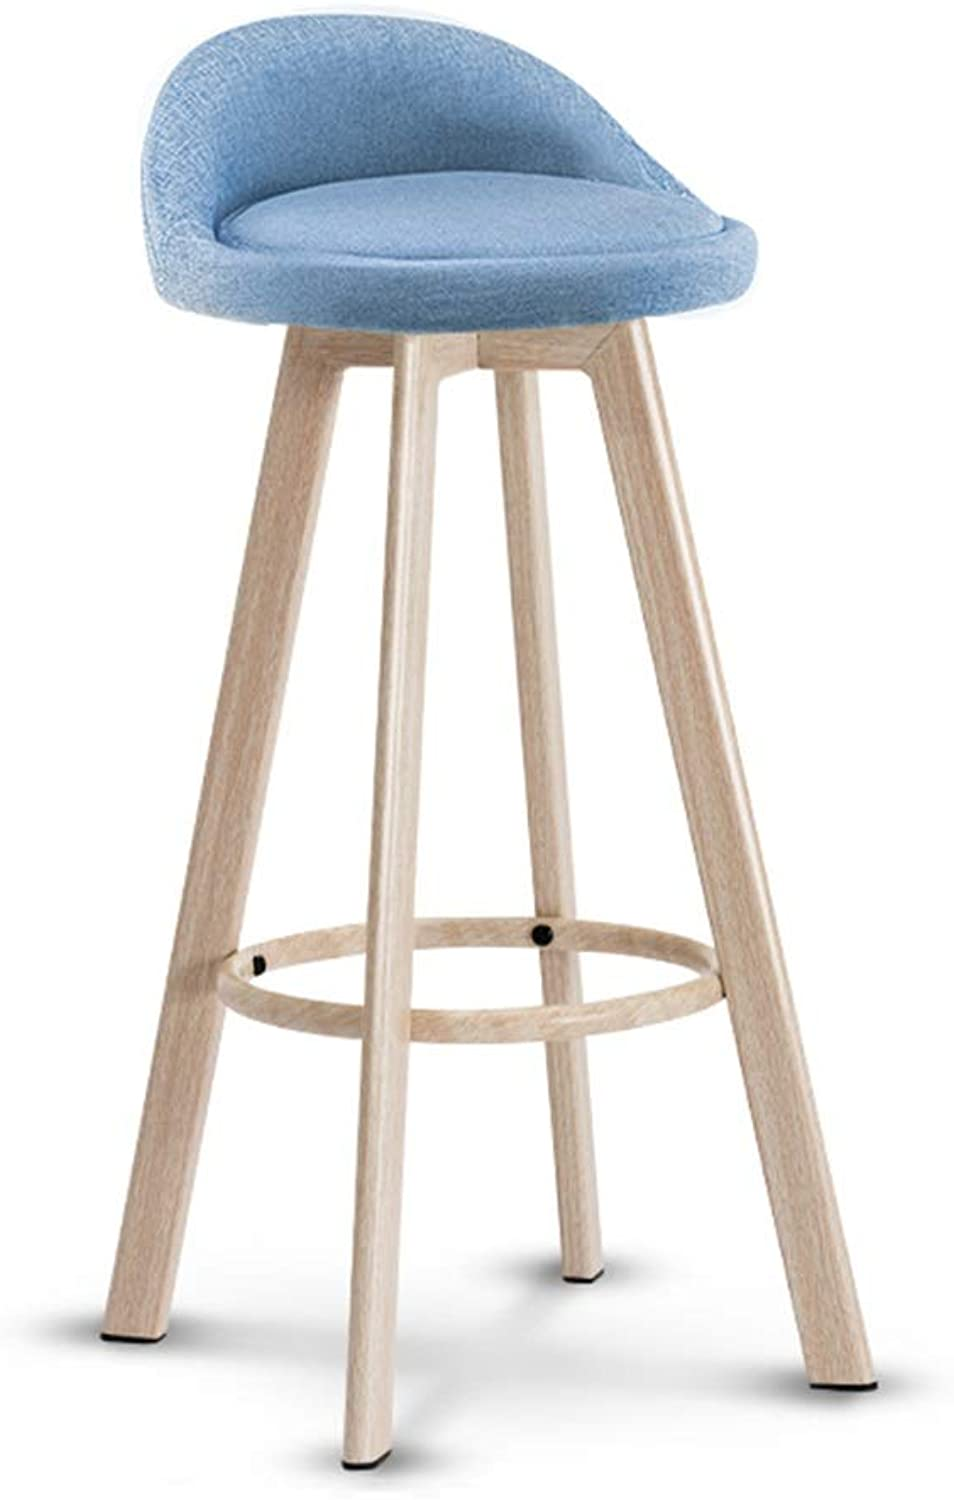 Seat 72cm 28.3inch Fabric Solid Wood High Stool, Bar Stool with Footrest, Multi-color Optional (color   C)